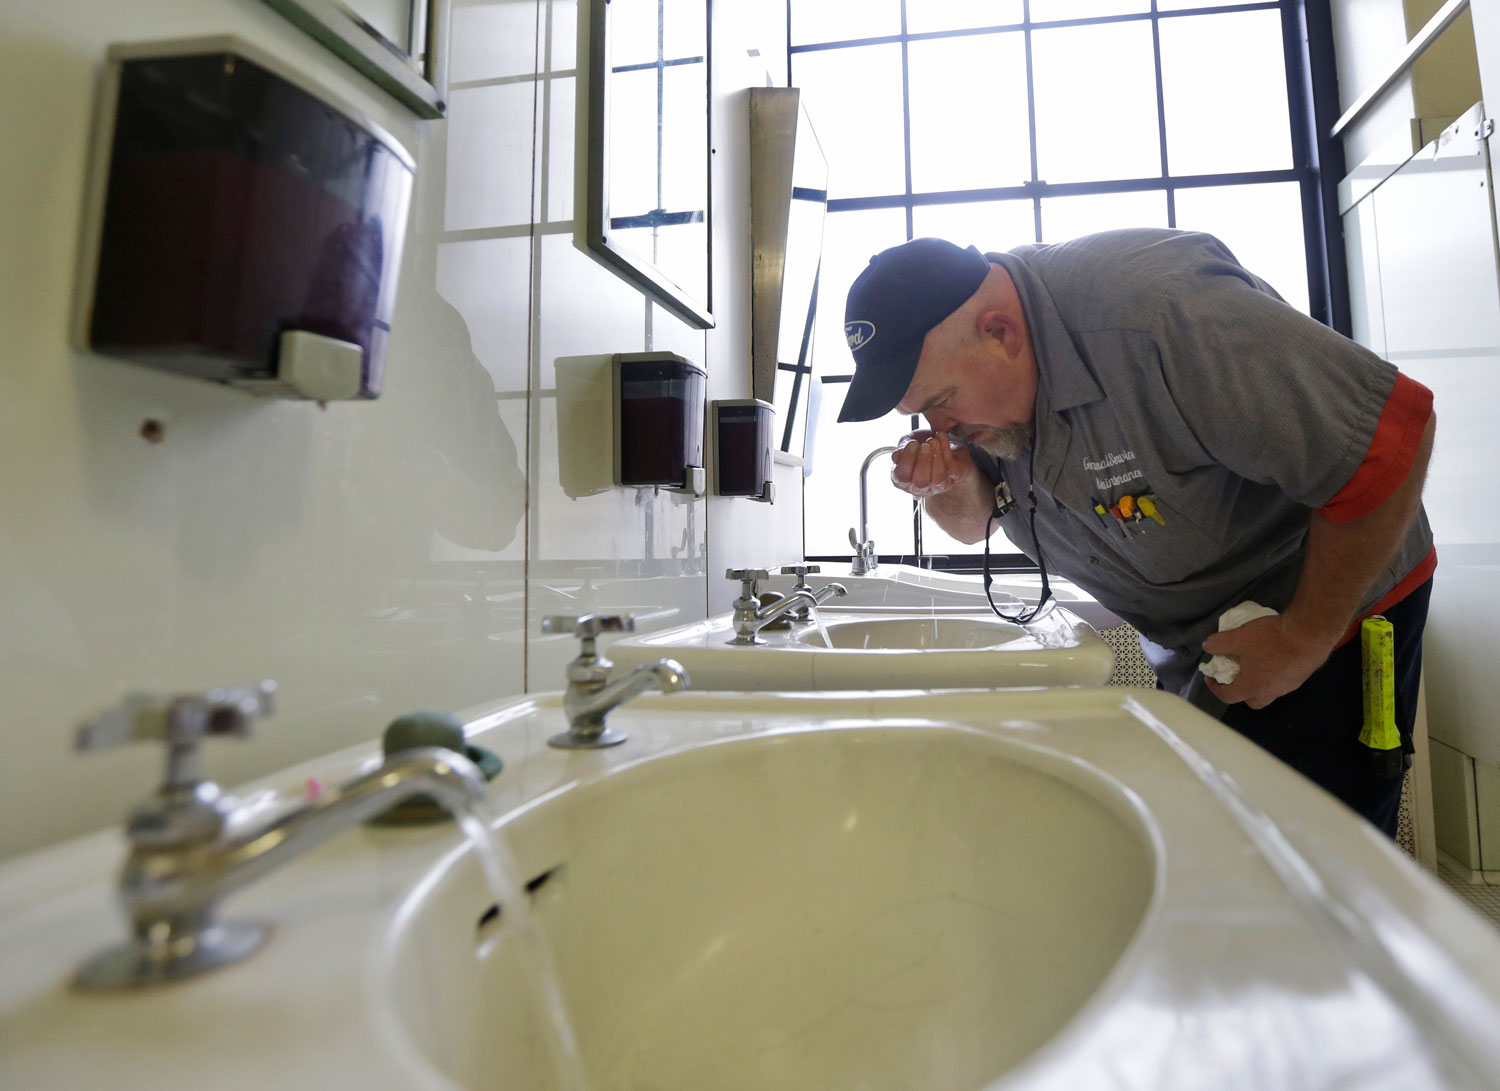 An-inspector-tests-the-water-of-the-first-floor-of-the-State-Capitol-in-Charleston-WV.-Monday-Jan.-13-2014.-AP-PhotoSteve-Helber